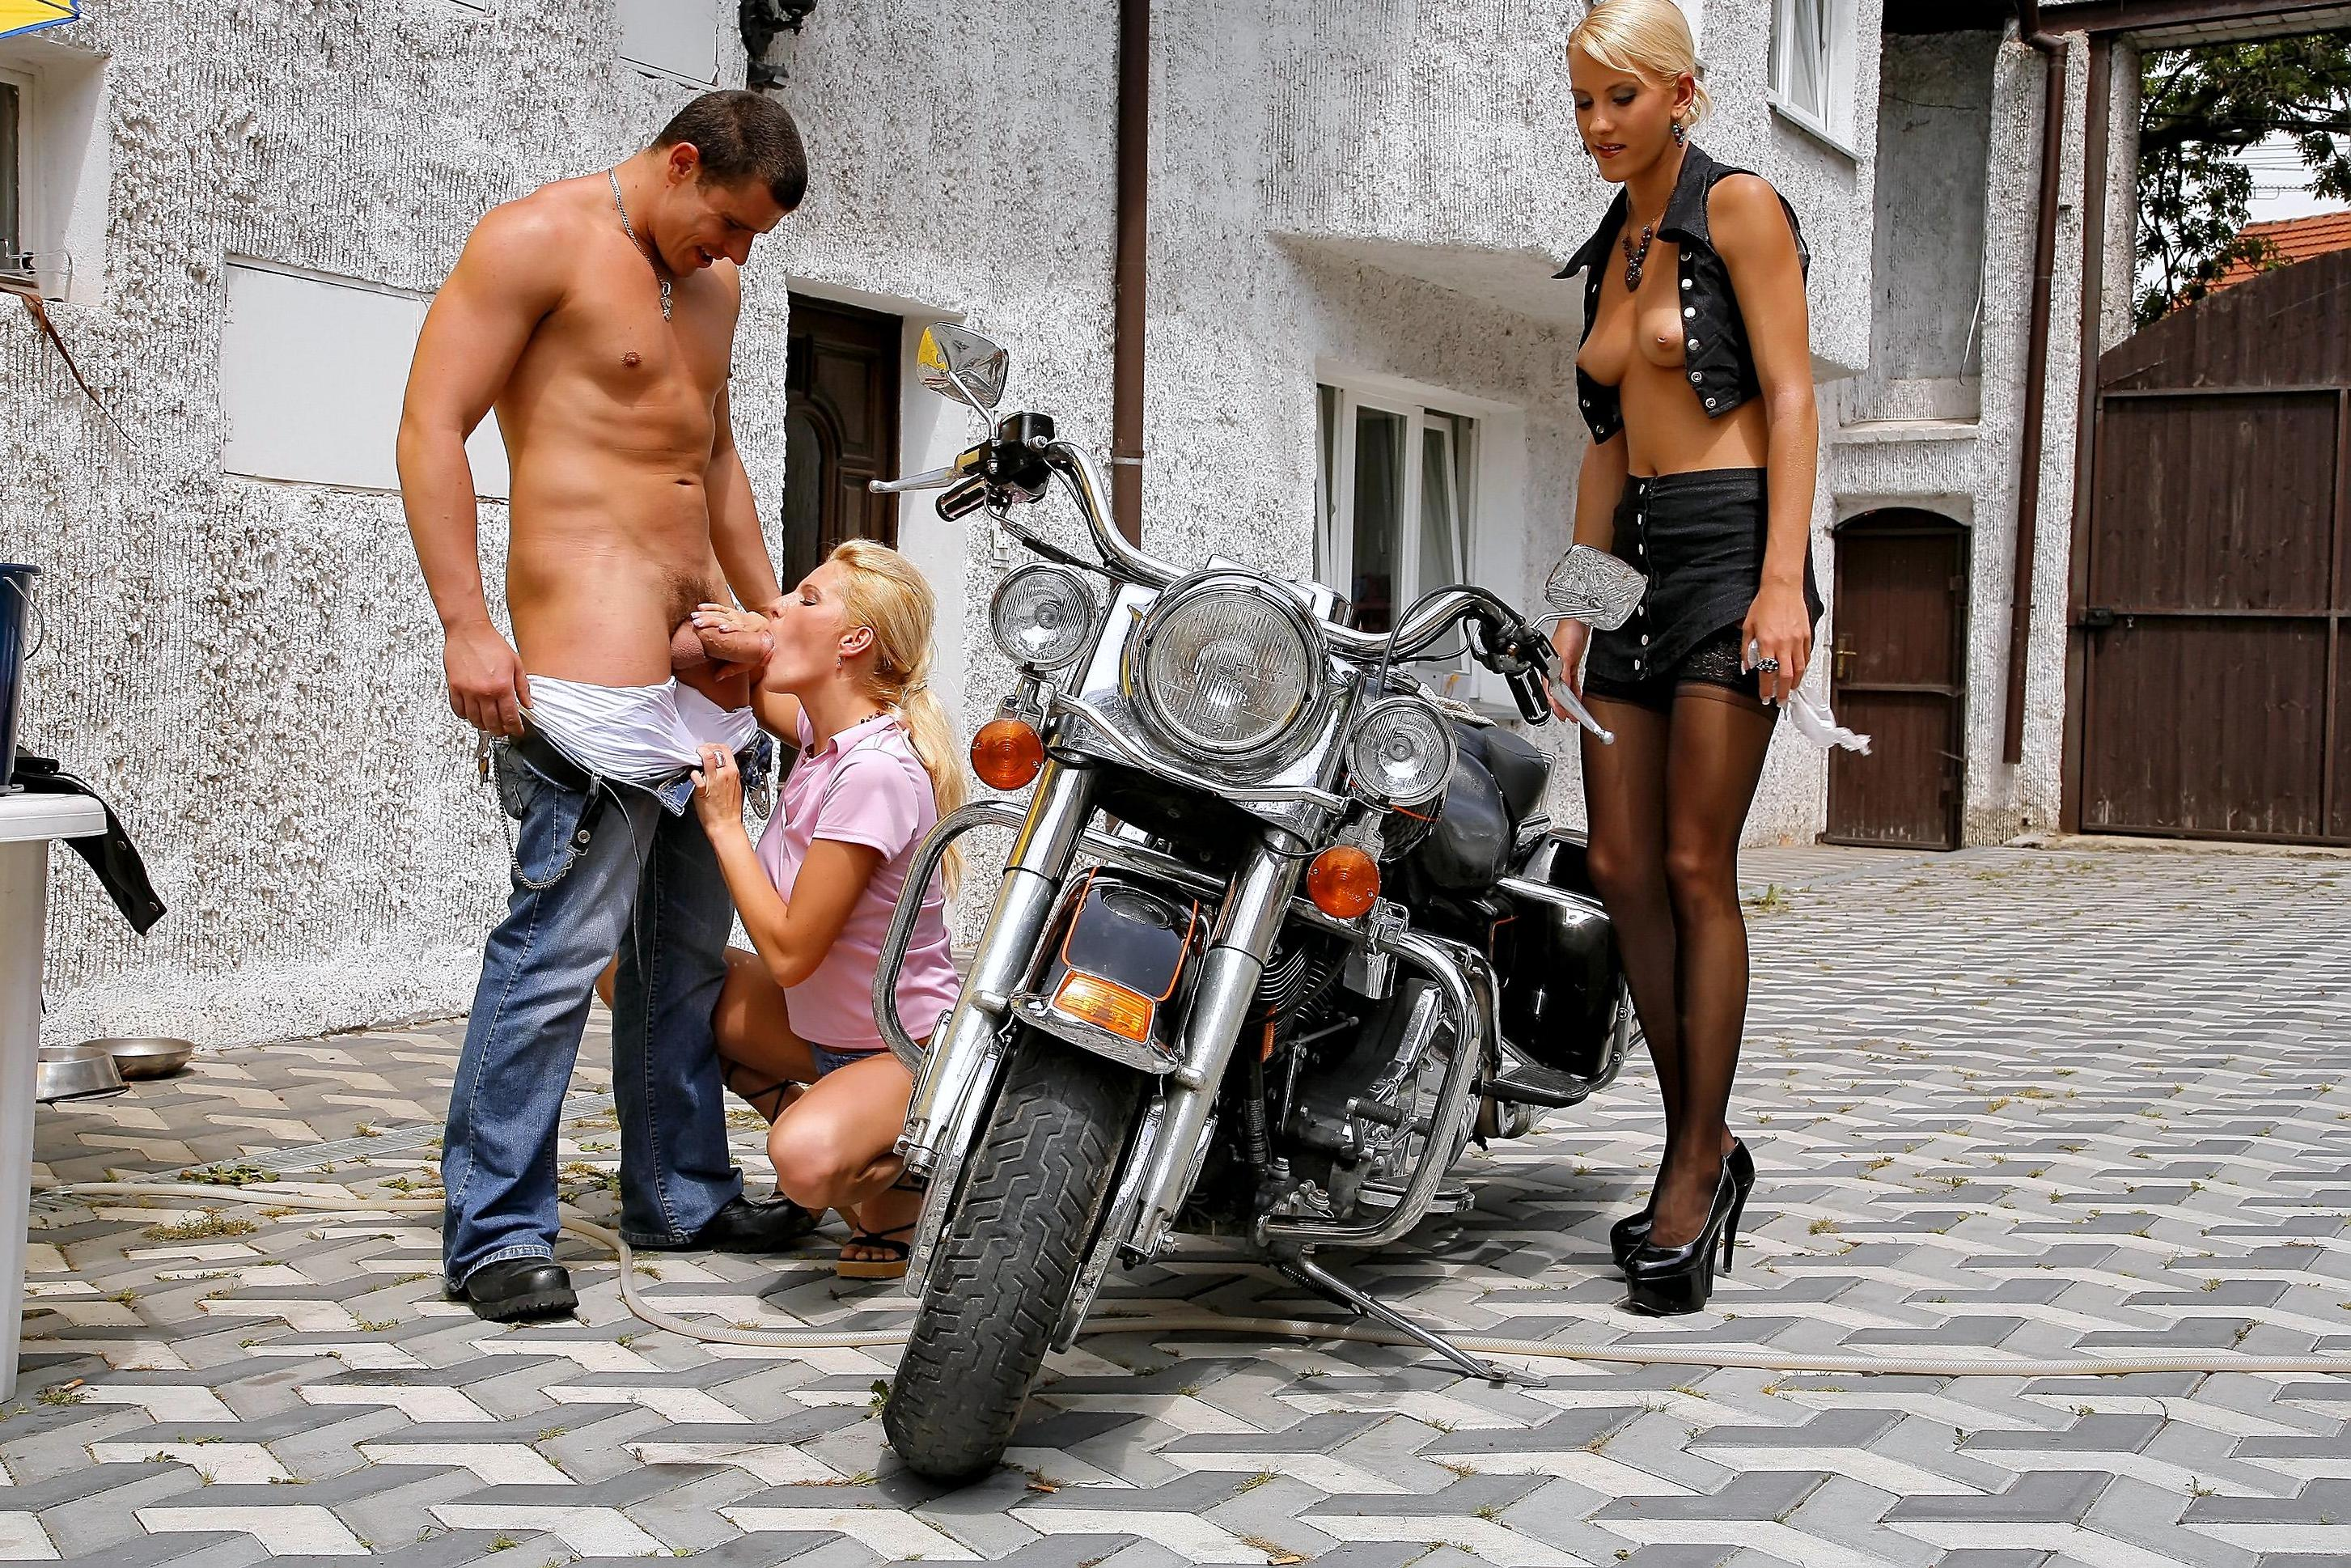 Blowjob on motorcycle